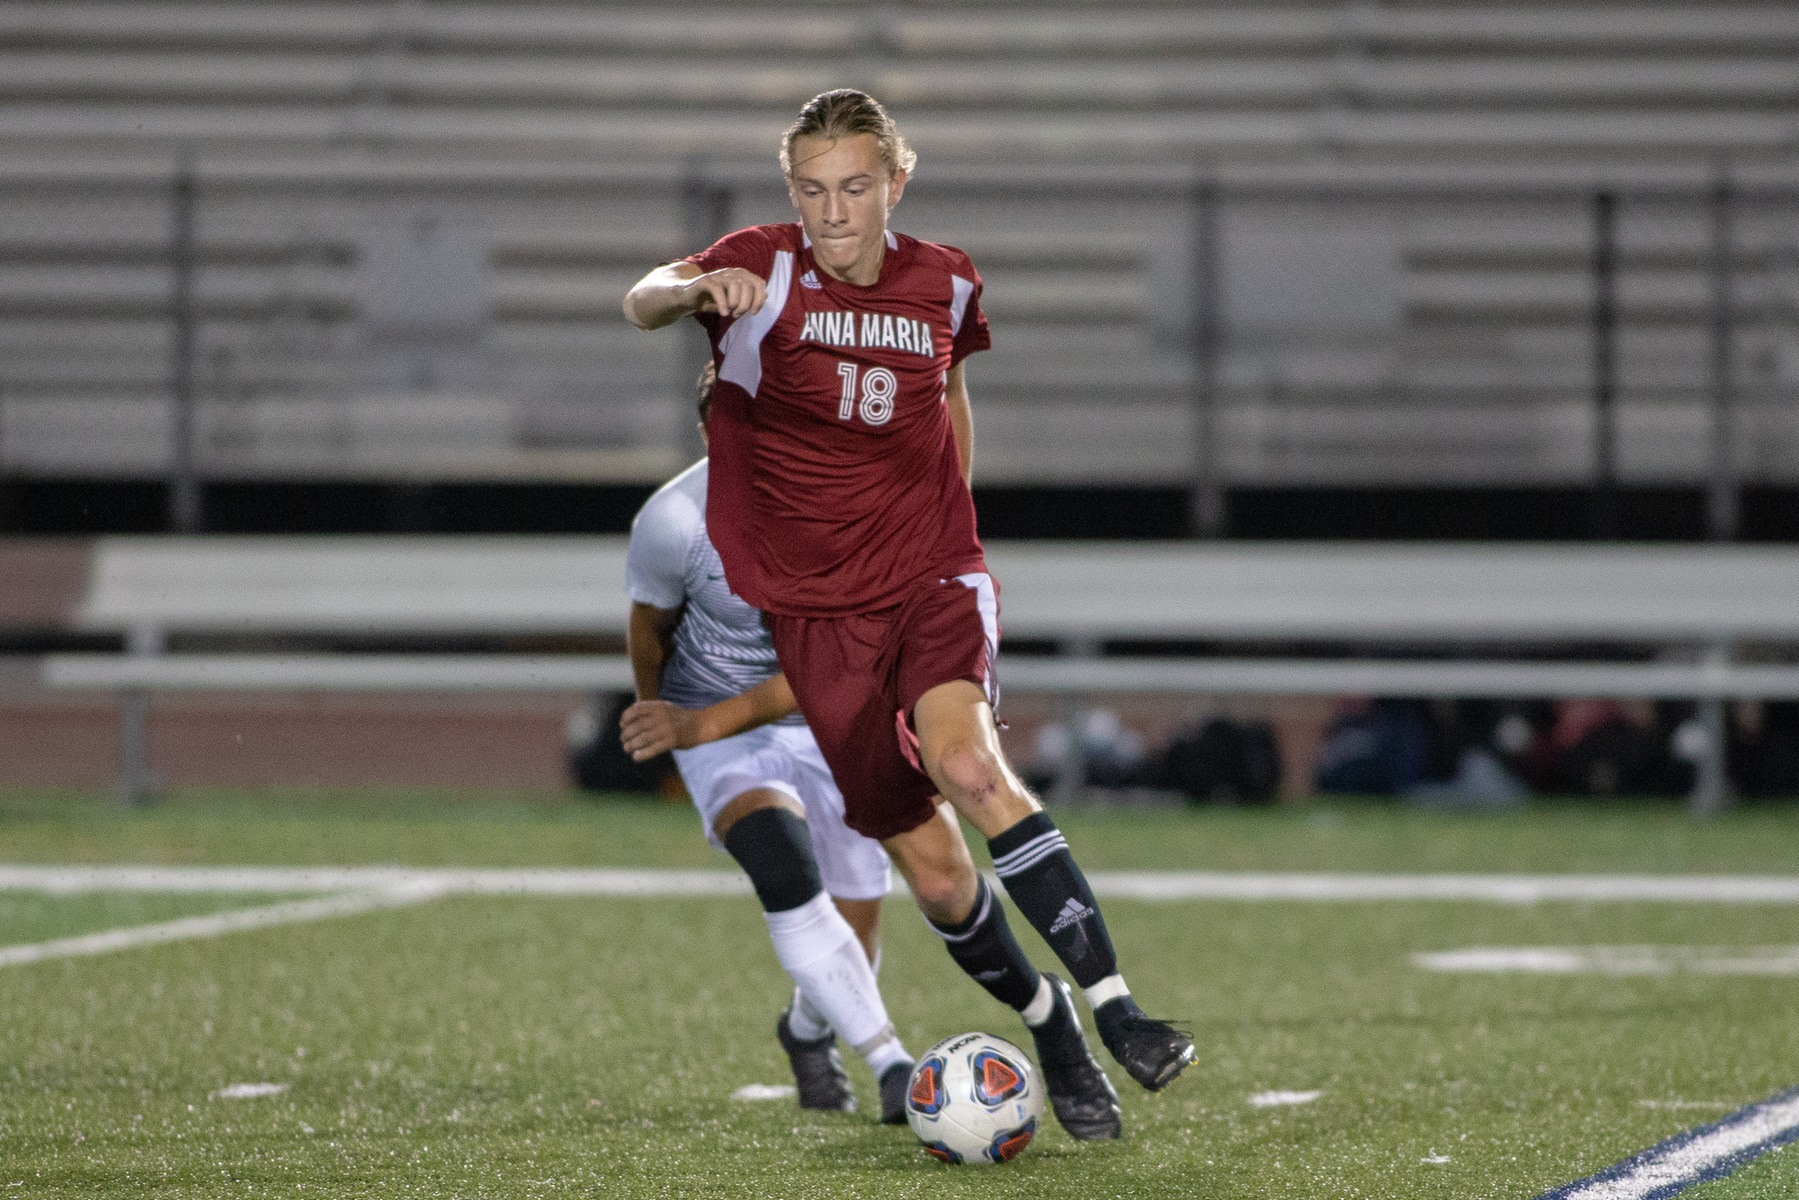 Union Bests Men's Soccer, 6-1